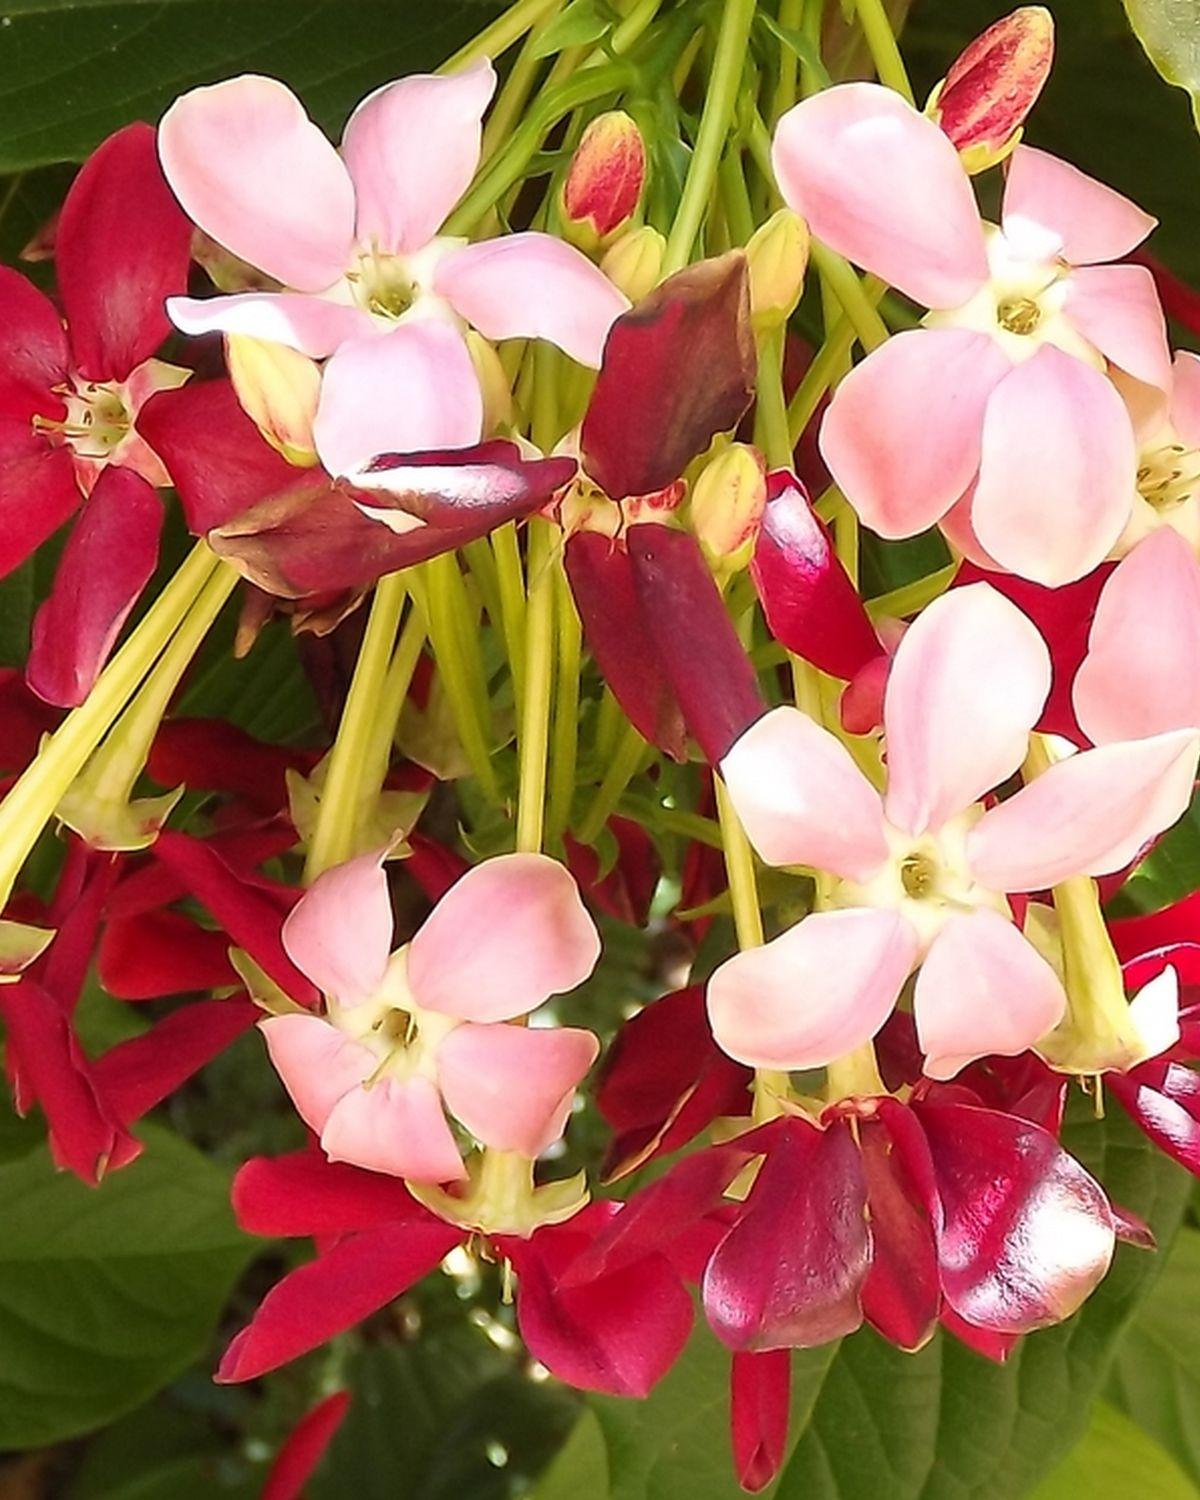 Rangoon Creeper Single Flower Pink Red Exotic Fragrant Tropical